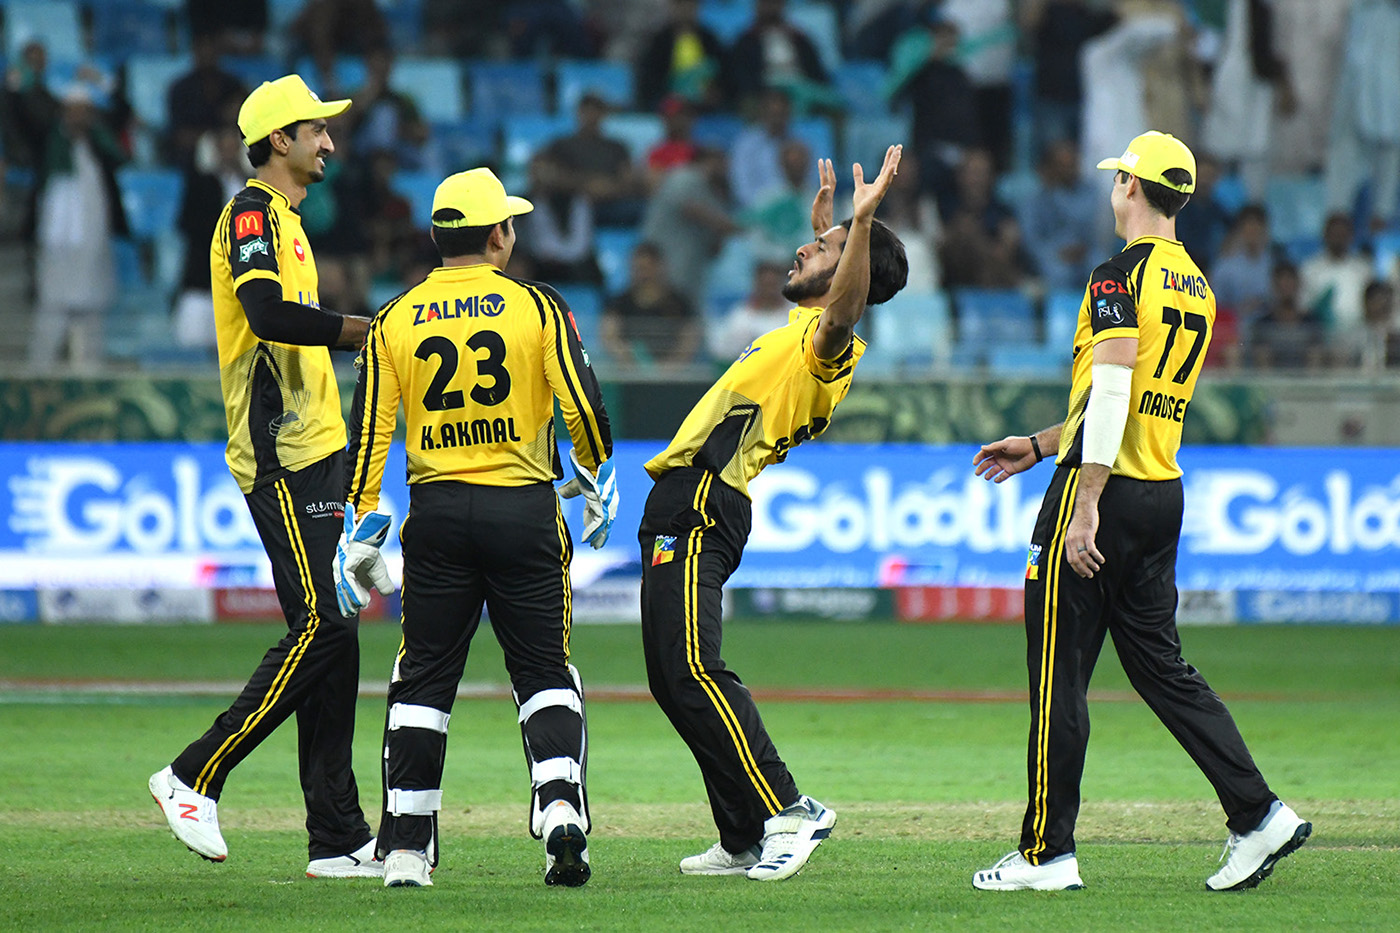 Peshawar Zalmi beat Lahore Qalandars by 7 wickets to win match 7 of PSL 4